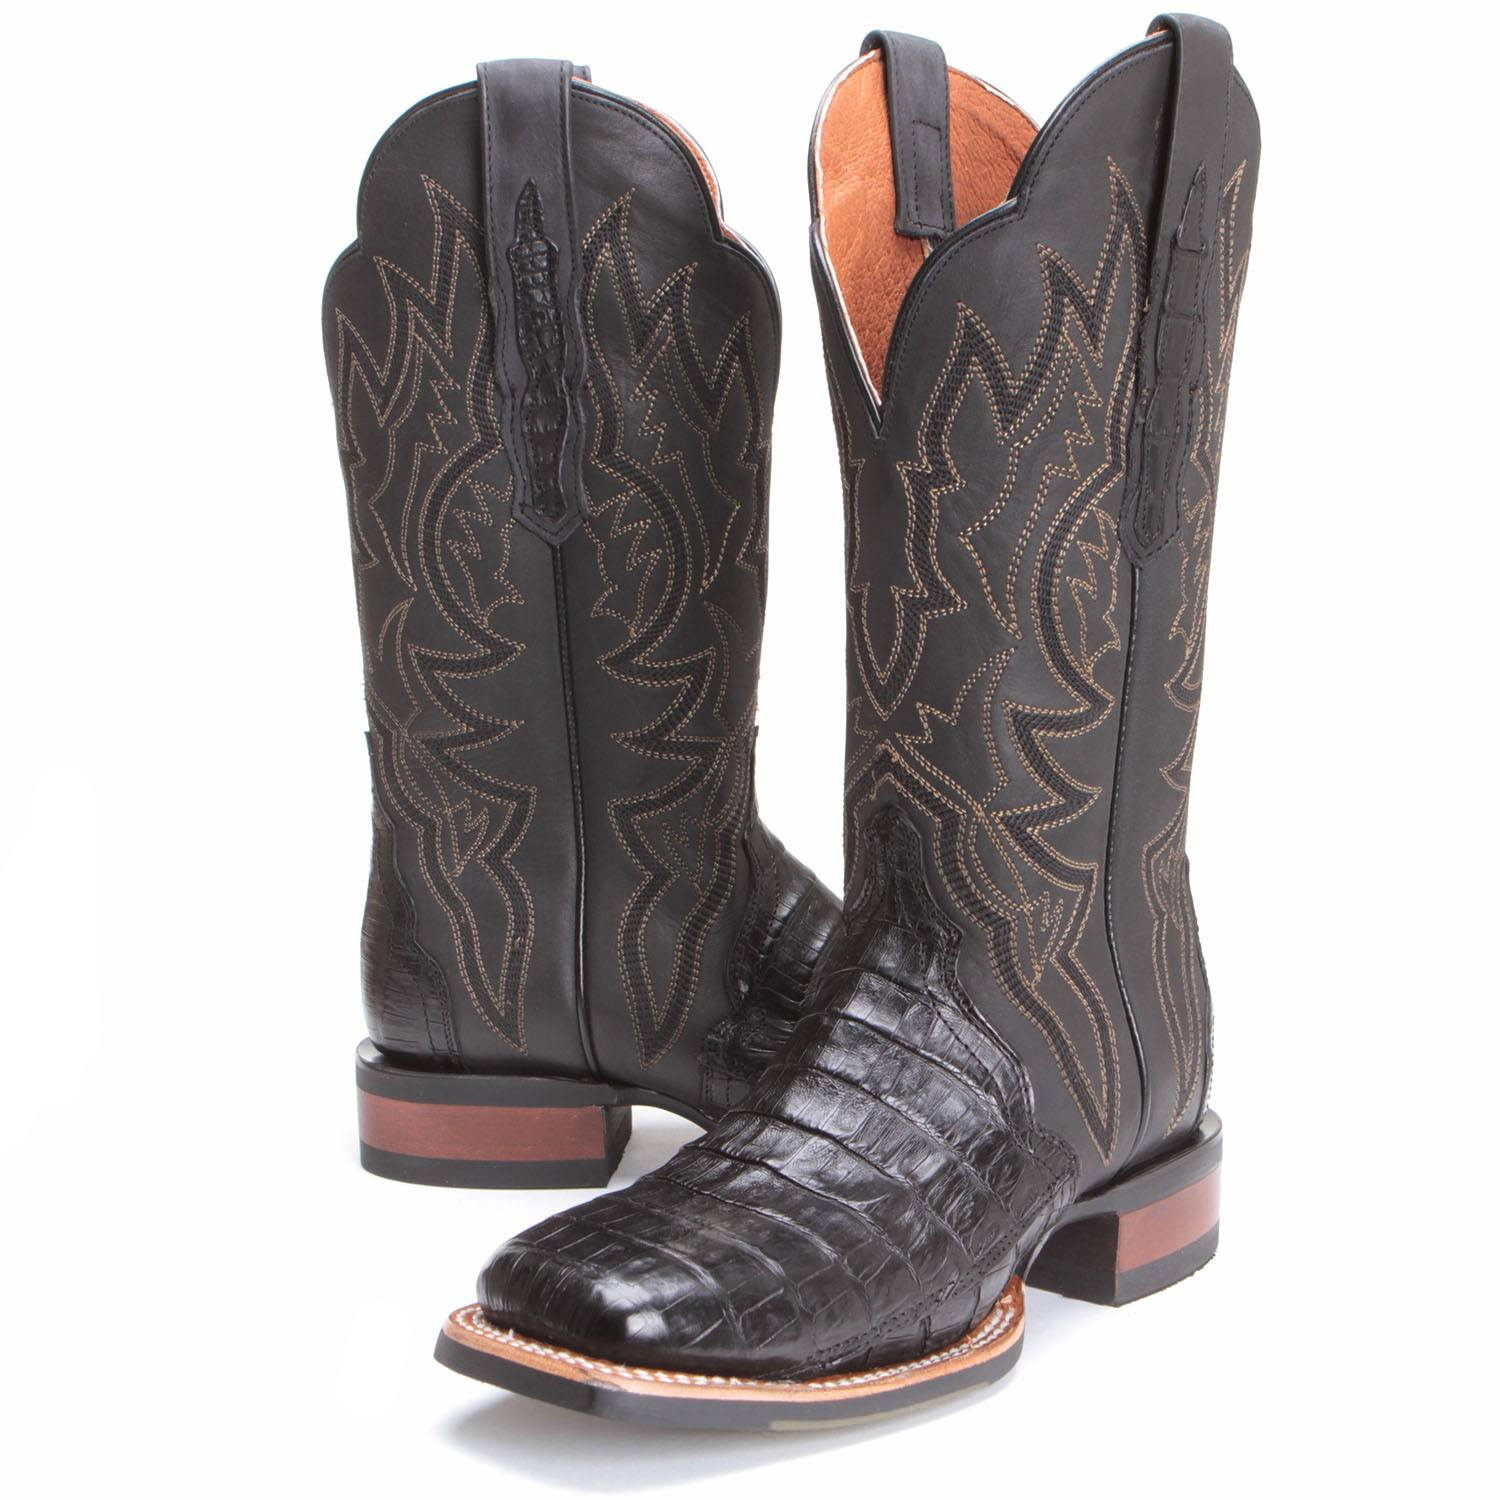 546161d8262 BootDaddy with Dan Post Womens Alligator Caiman Cowboy Boots Black